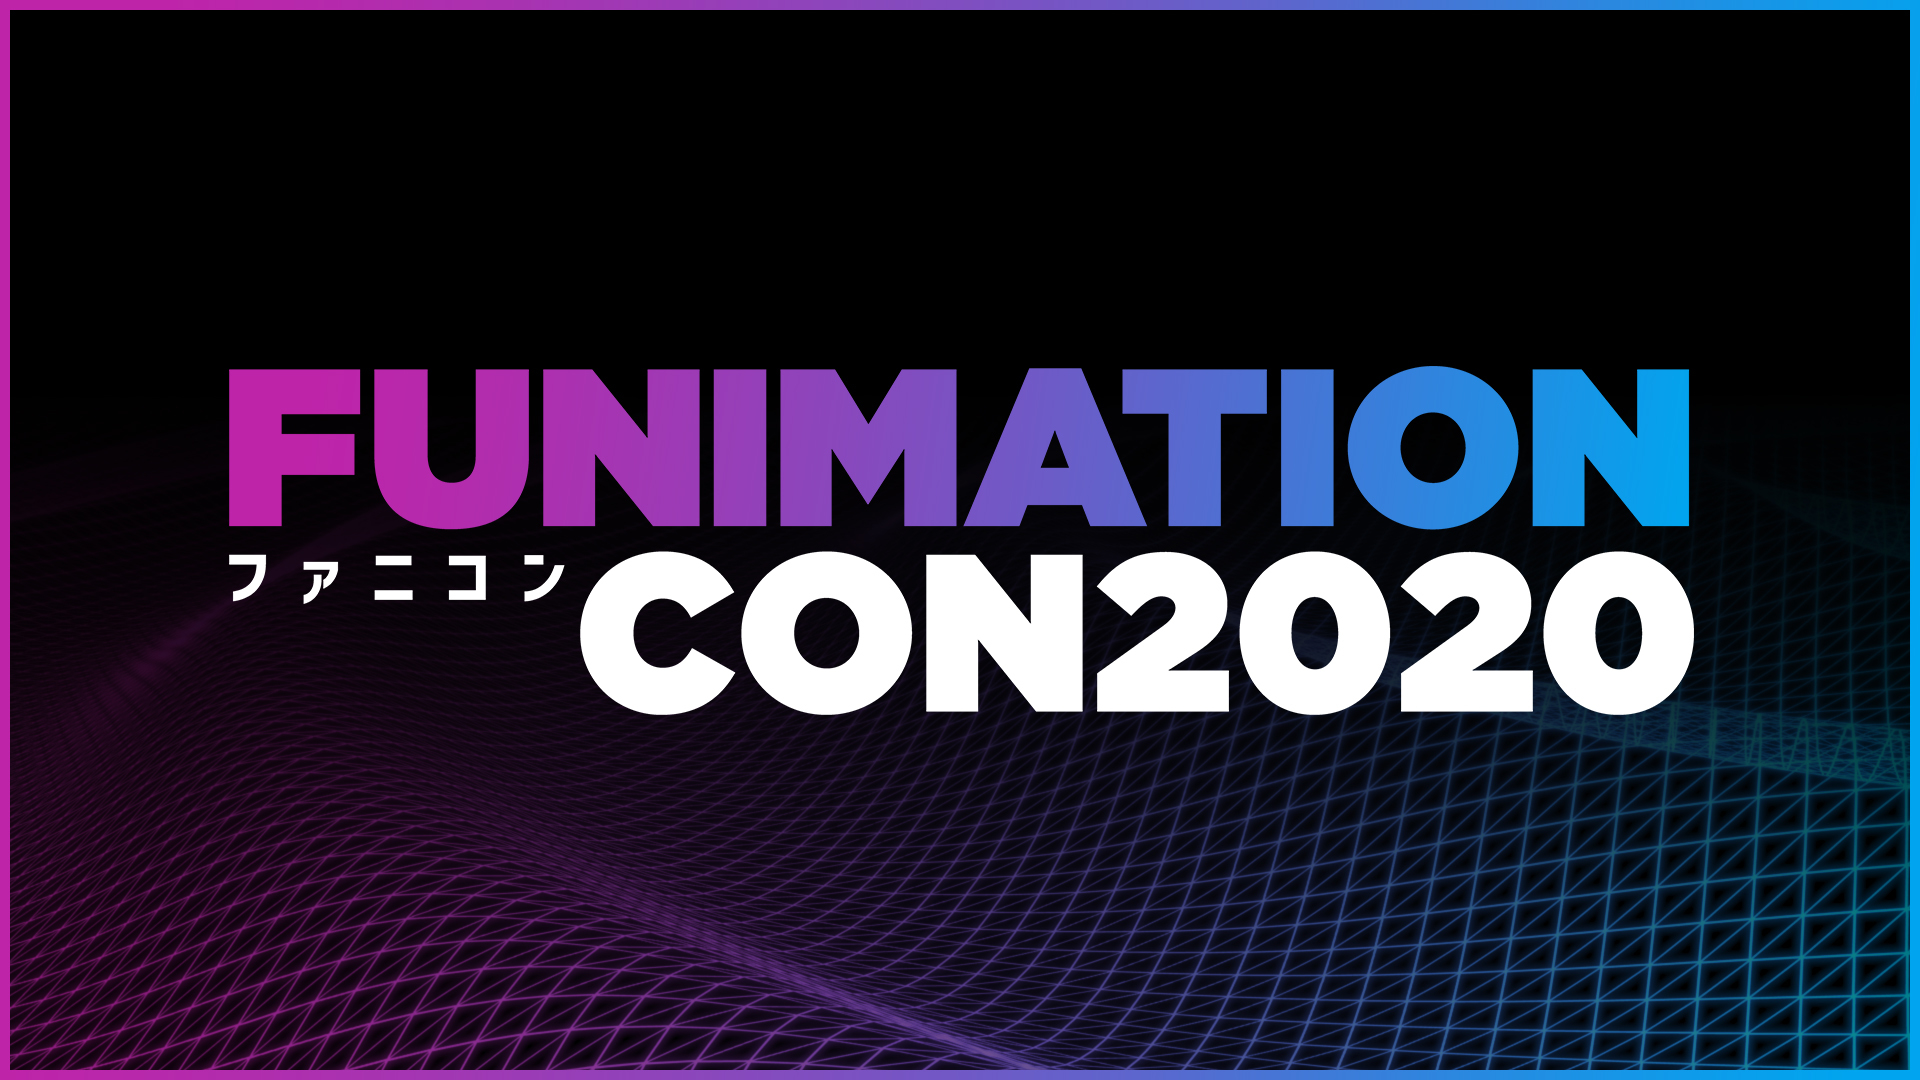 Funimation onthuld online Anime conventie